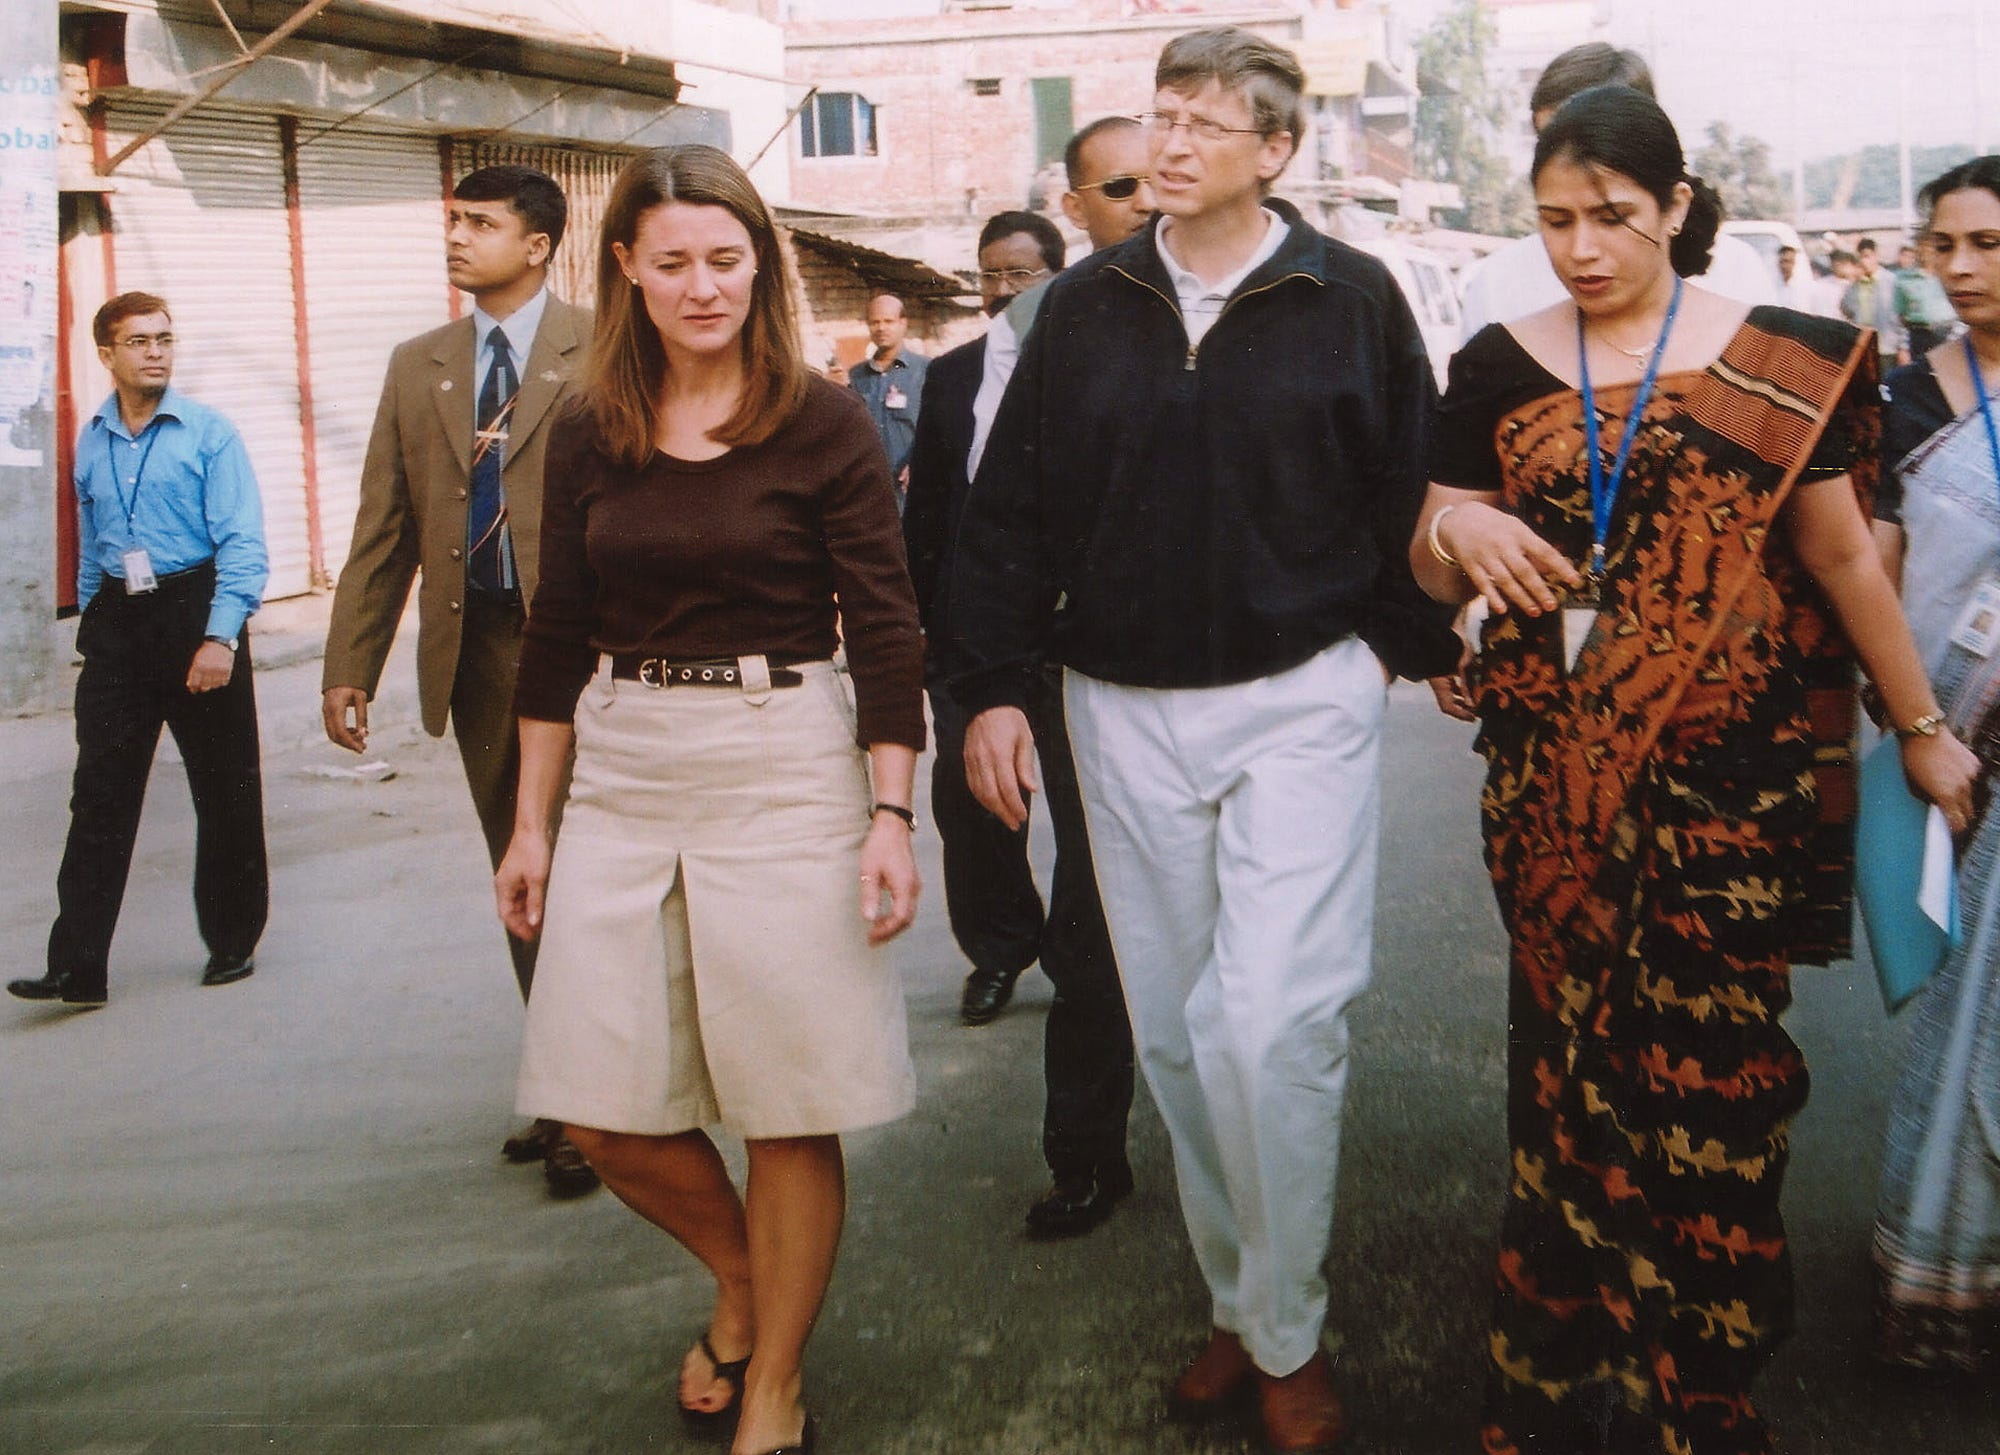 Charity experts: No changes expected at Bill and Melinda Gates Foundation after divorce